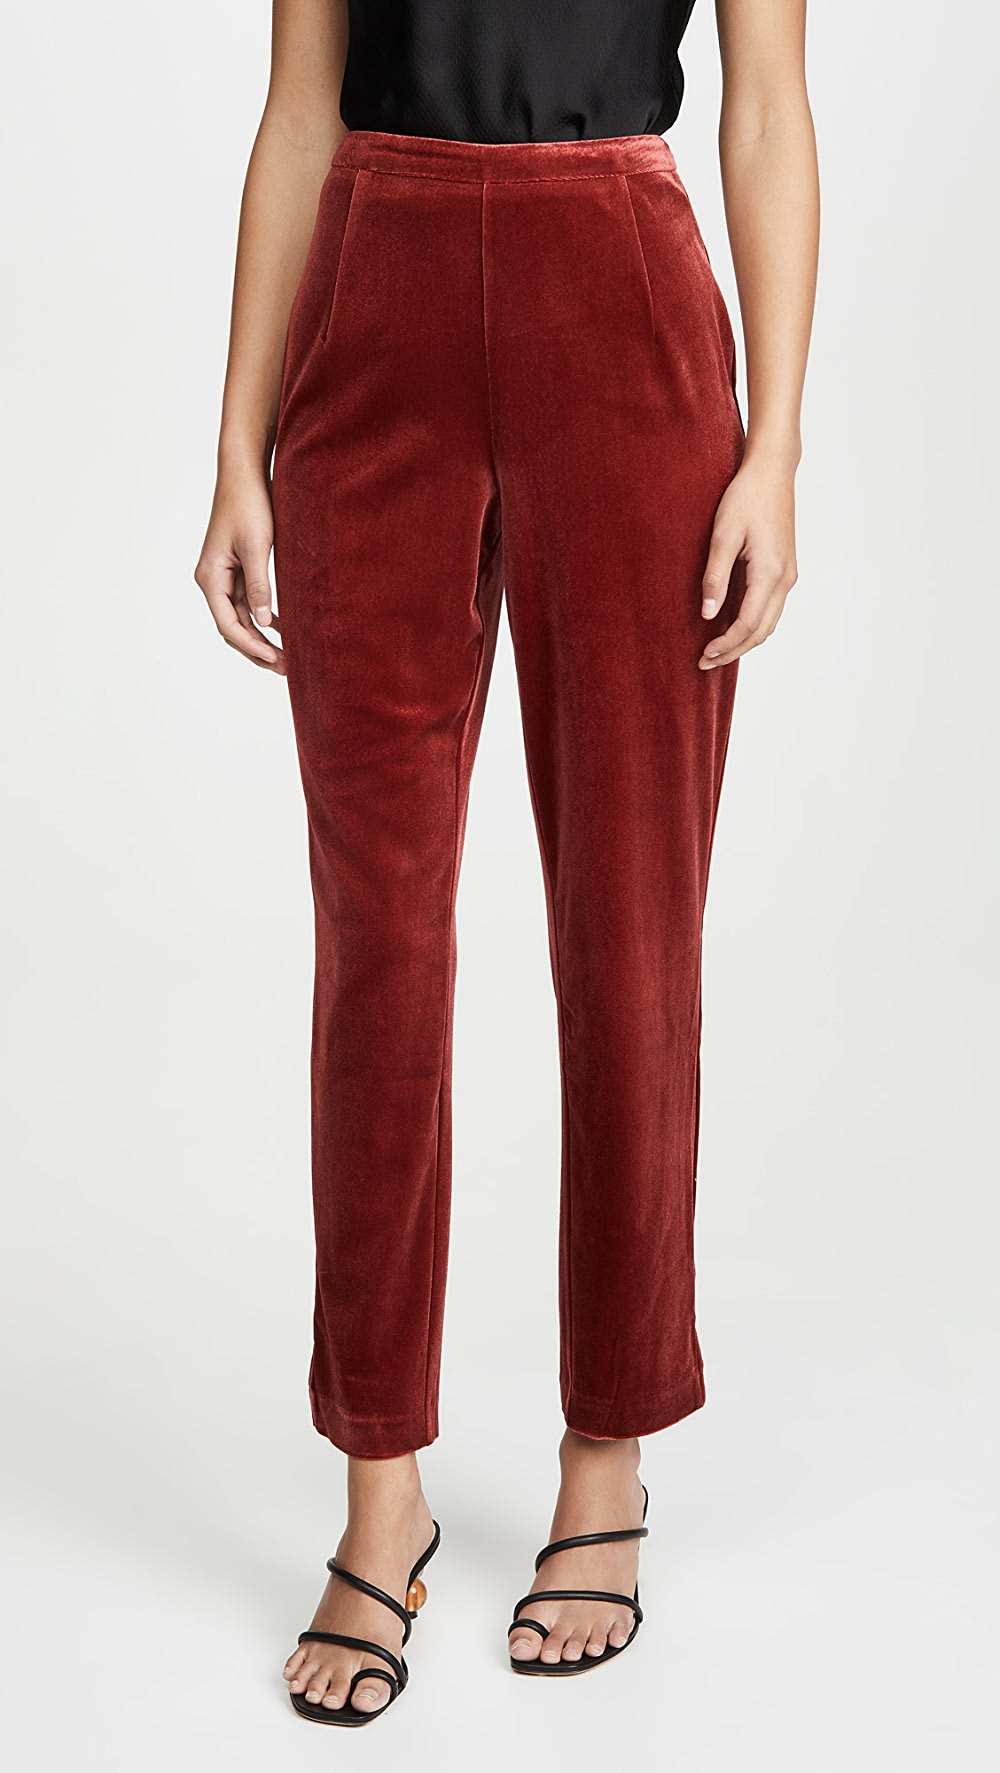 Aspiring Yumi Kim - City Slicker Pants Crazy Price